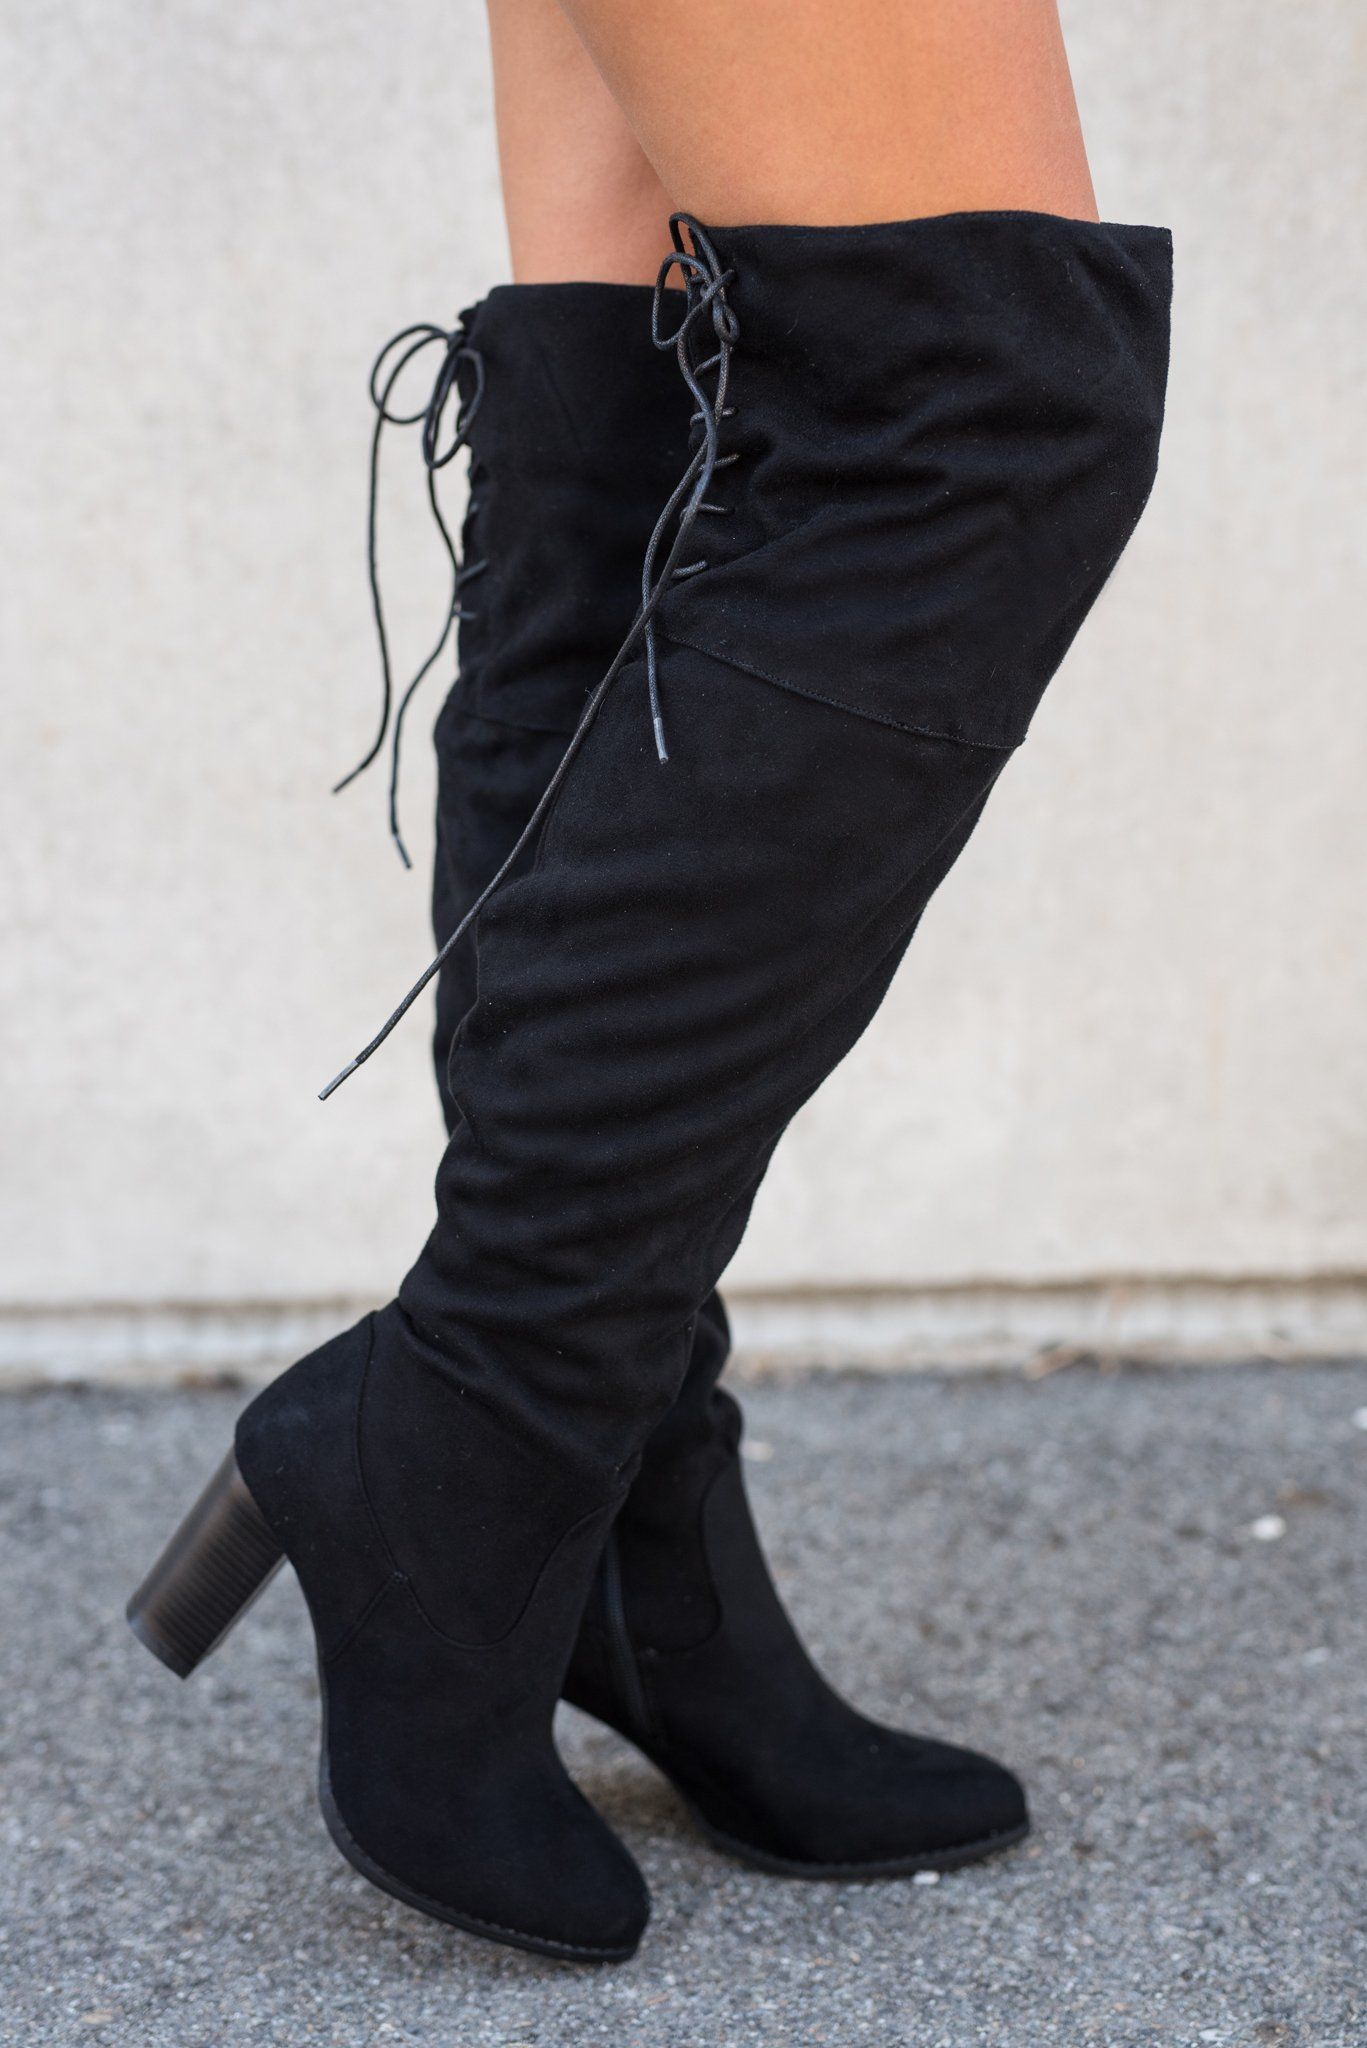 City Classic Thigh High Boot (Black) (With images) | Black boots